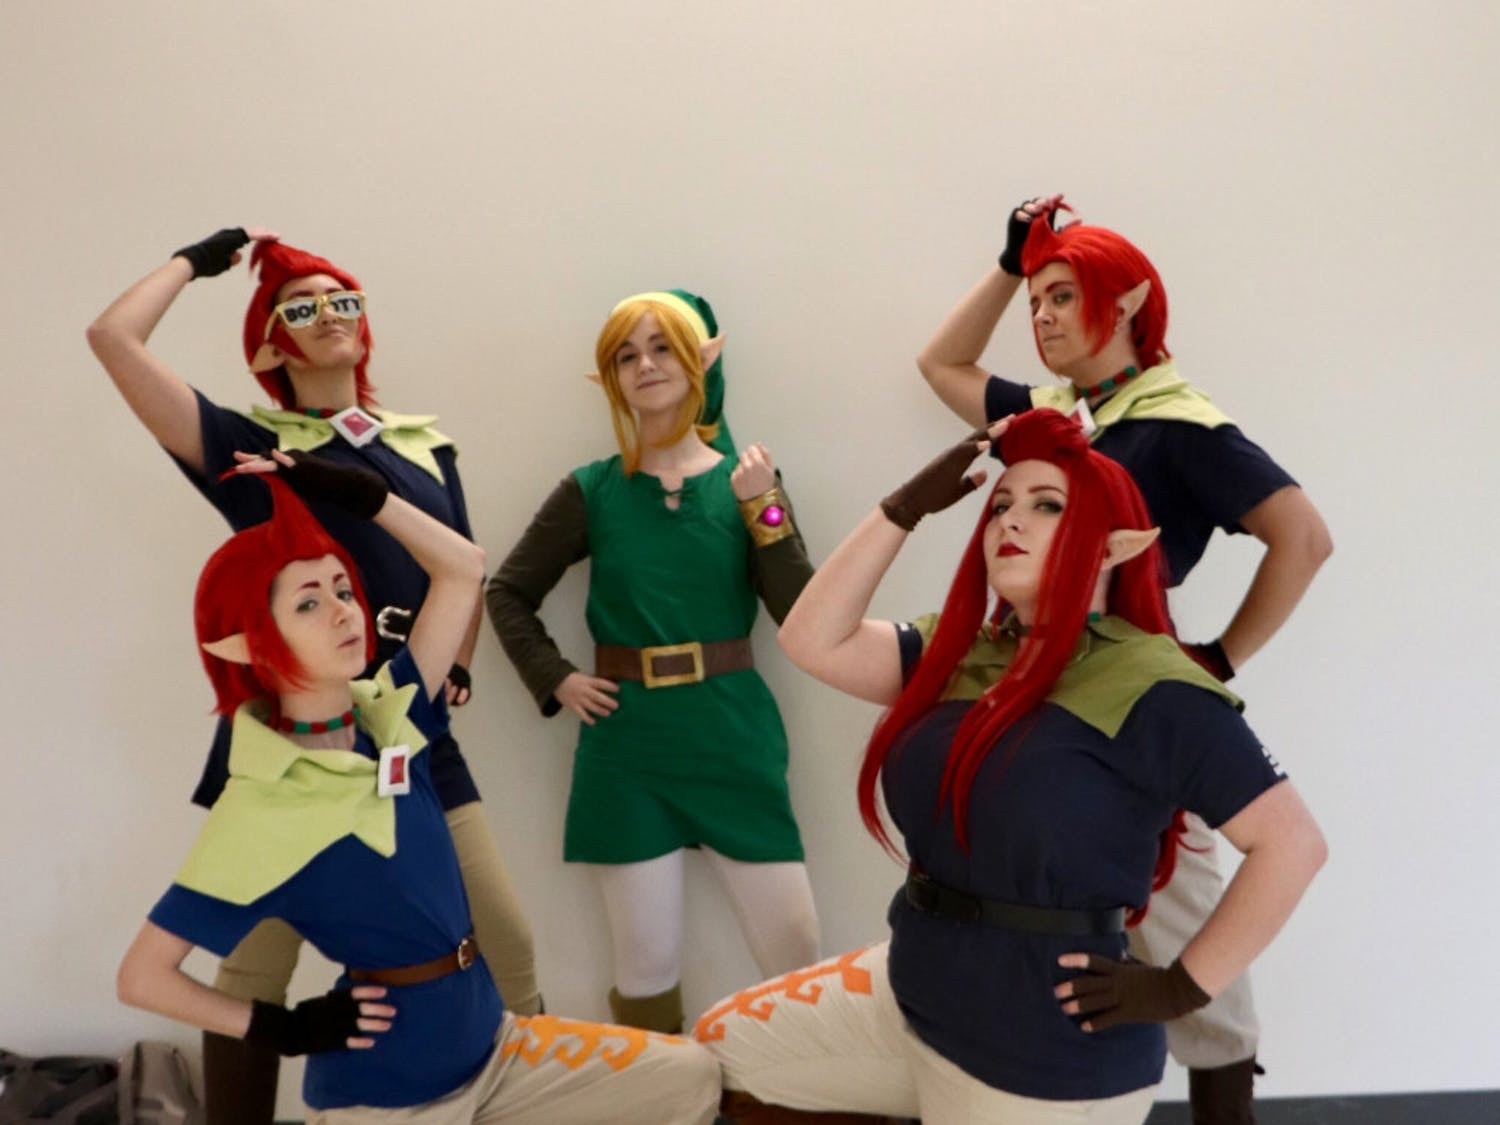 "Link and the Groose FlockLeft to Right Names: Maddie Langguth, Kim Cruz, Katrina Lundquist , Keira McDonald and Kaitlin Duggan.The five planned this group cosplay a year in advance as an inside joke. Lundquist cosplays as Link, a character from ""The Legend of Zelda"" series, and the remaining four ladies dress up as Groose, who appears in ""The Legend of Zelda: Skyward Sword.""According to Duggan, the group spent three hours working on their costumes in their hotel room. They have attended multiple conventions as Link and the Groose Flock.""It's nice we're a joke cosplay every once in a while,"" said Duggan.The group advises first-time cosplayers to have fun and to plan ahead.""Start early,"" said McDonald. ""Do not 'con crunch' and don't start your cosplay in three hours possibly in a hotel room."""